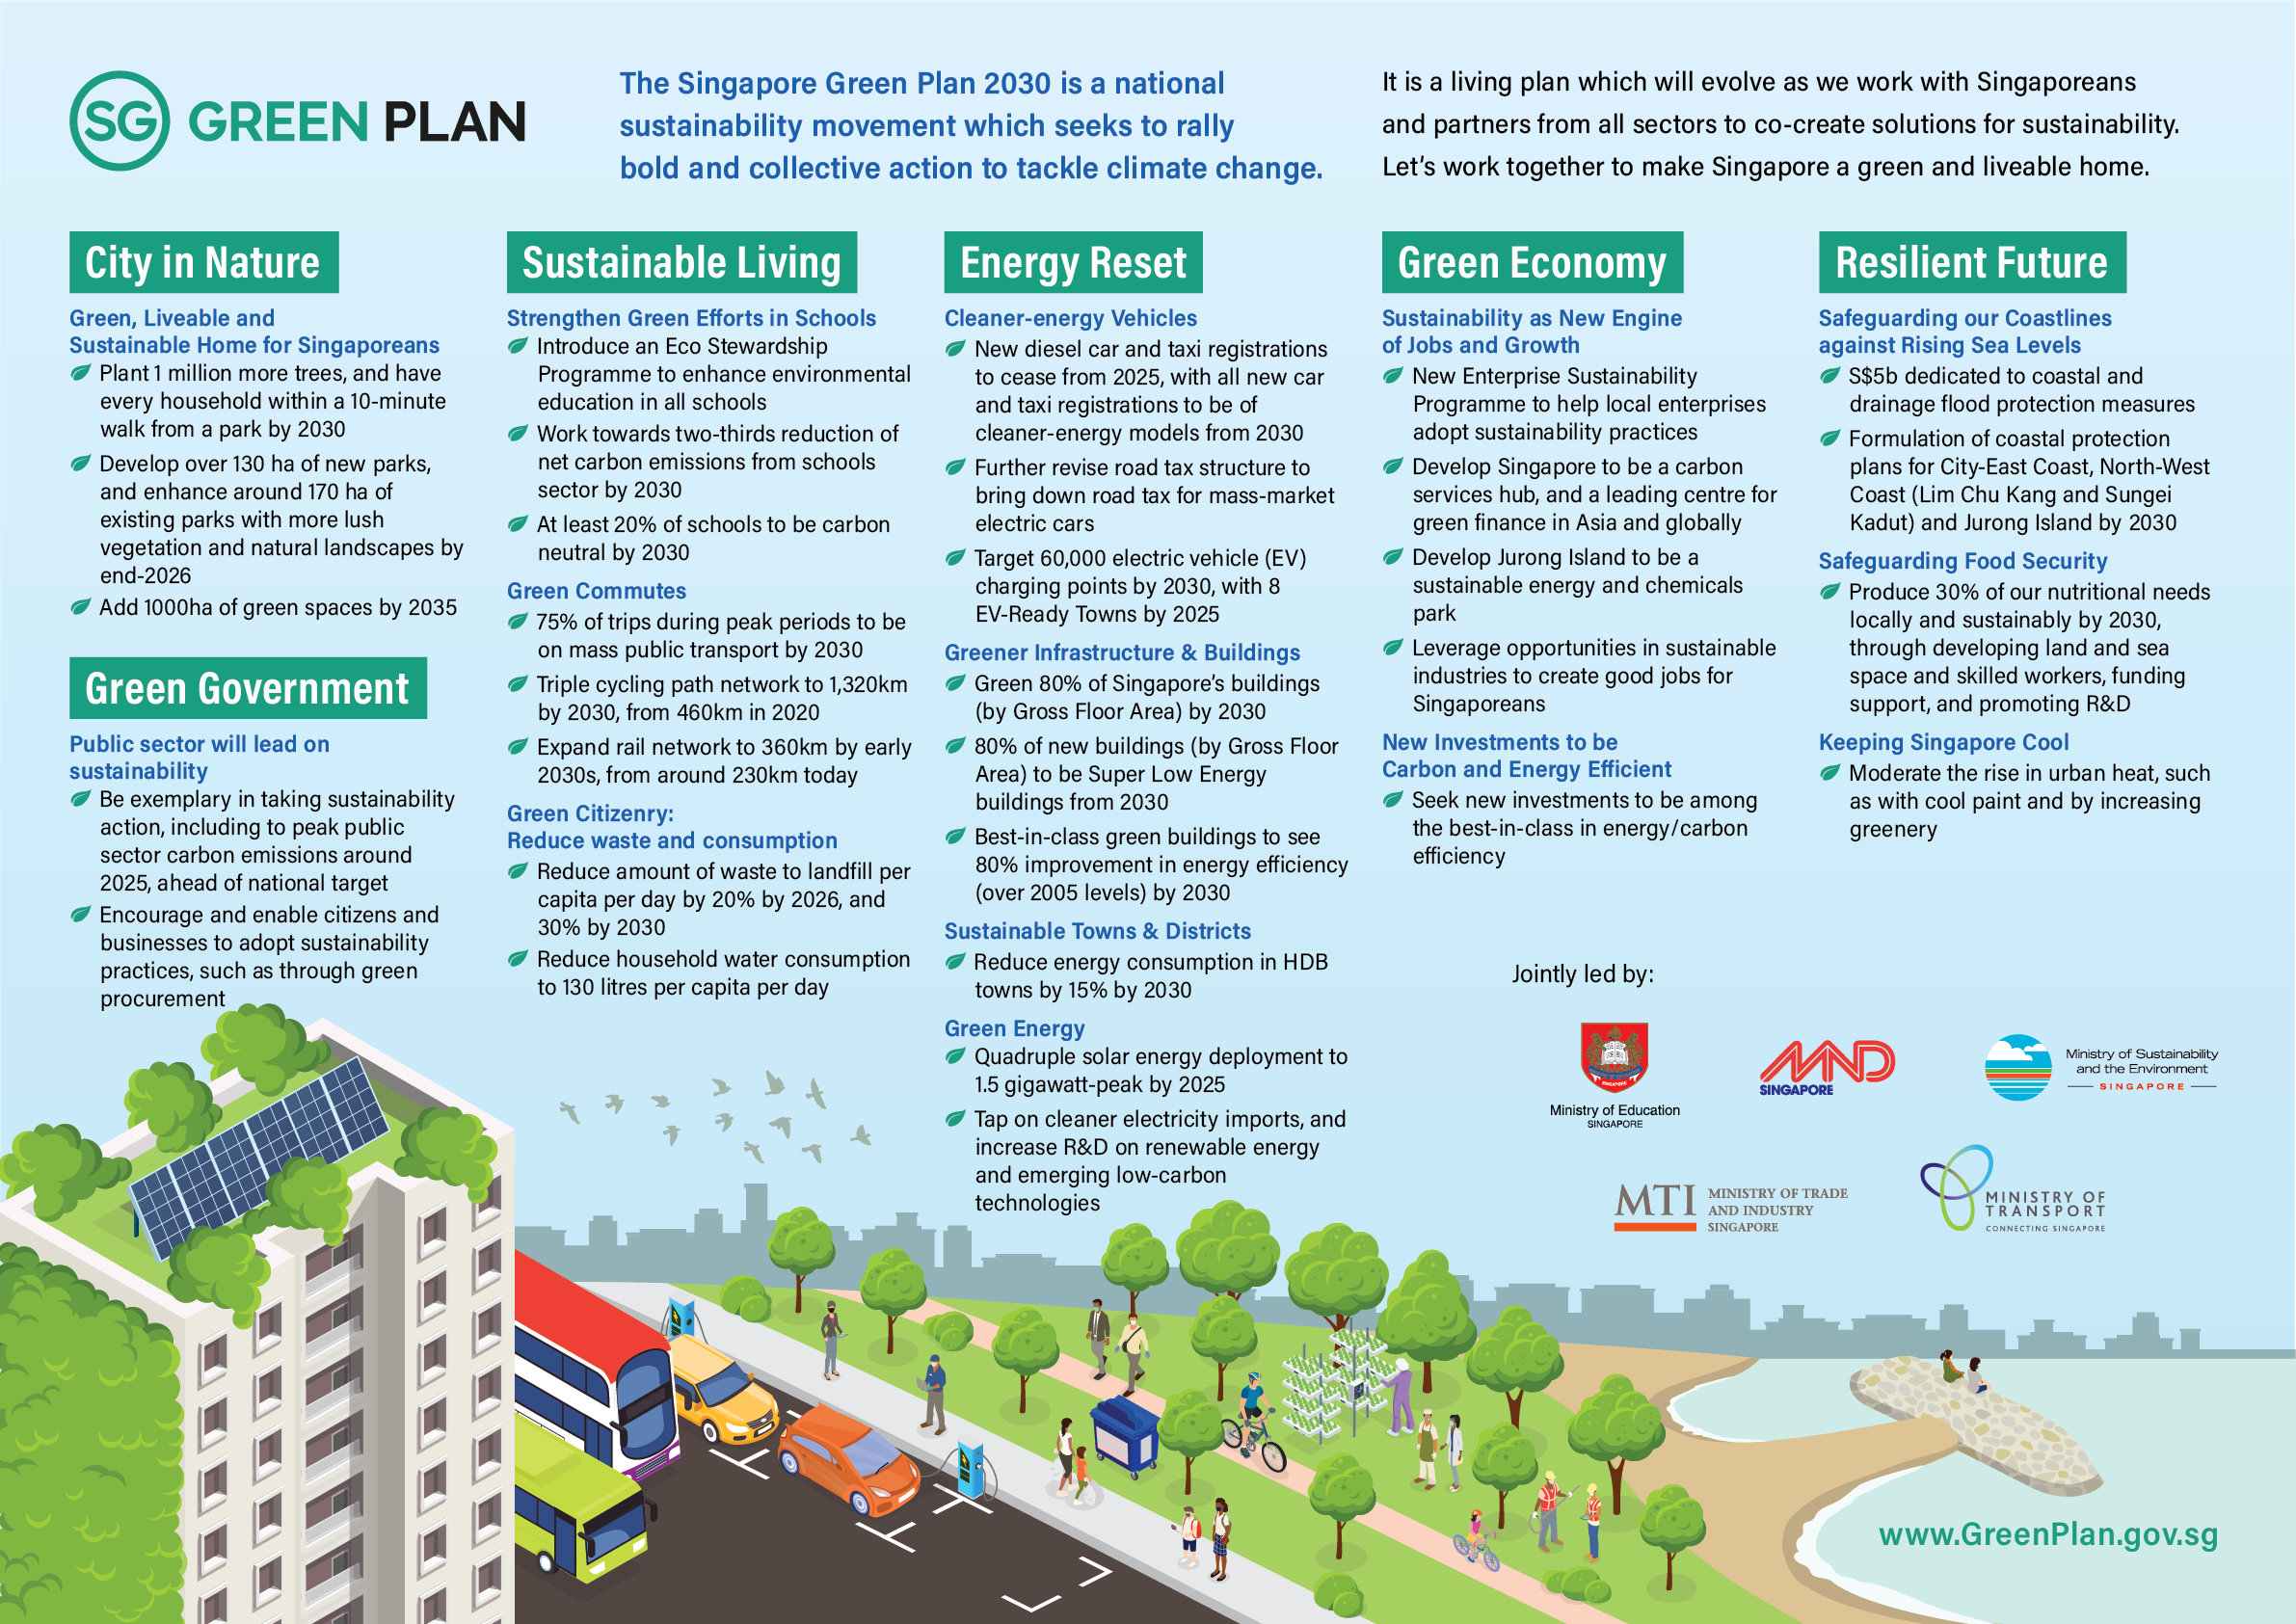 An overview of the Singapore government's Singapore Green Plan 2030, with six broad categories including City in Nature, Green Government, Sustainable Living, Energy Reset, Green Economy, and Resilient Future.